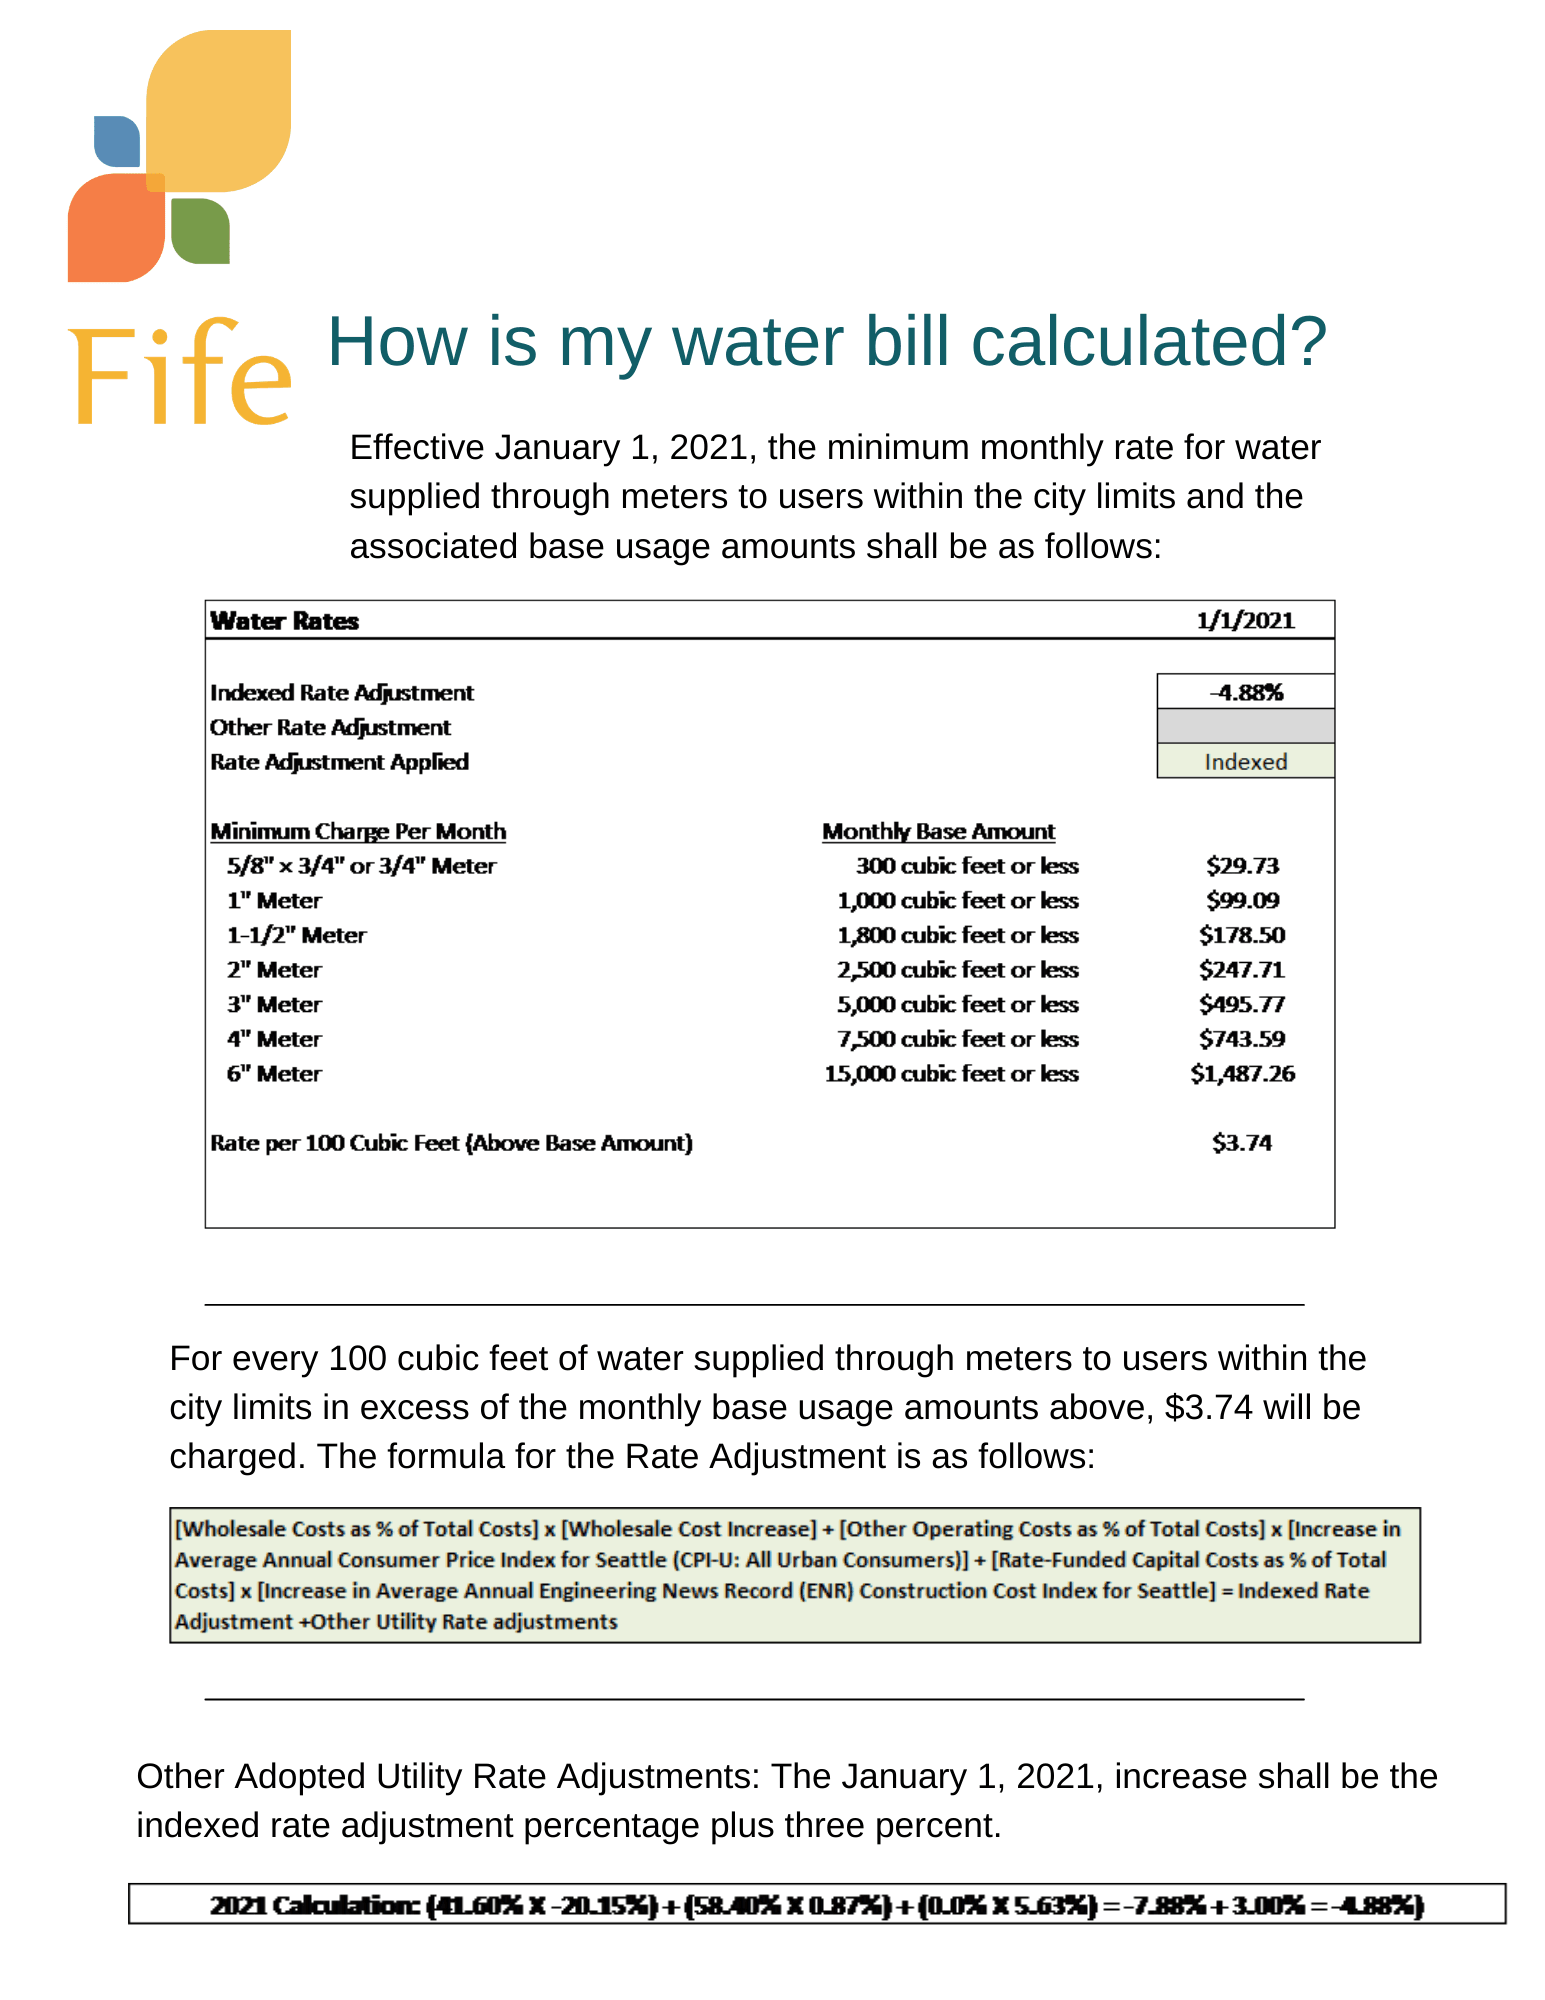 utility water bill rate calculation Jan 2021 image Opens in new window